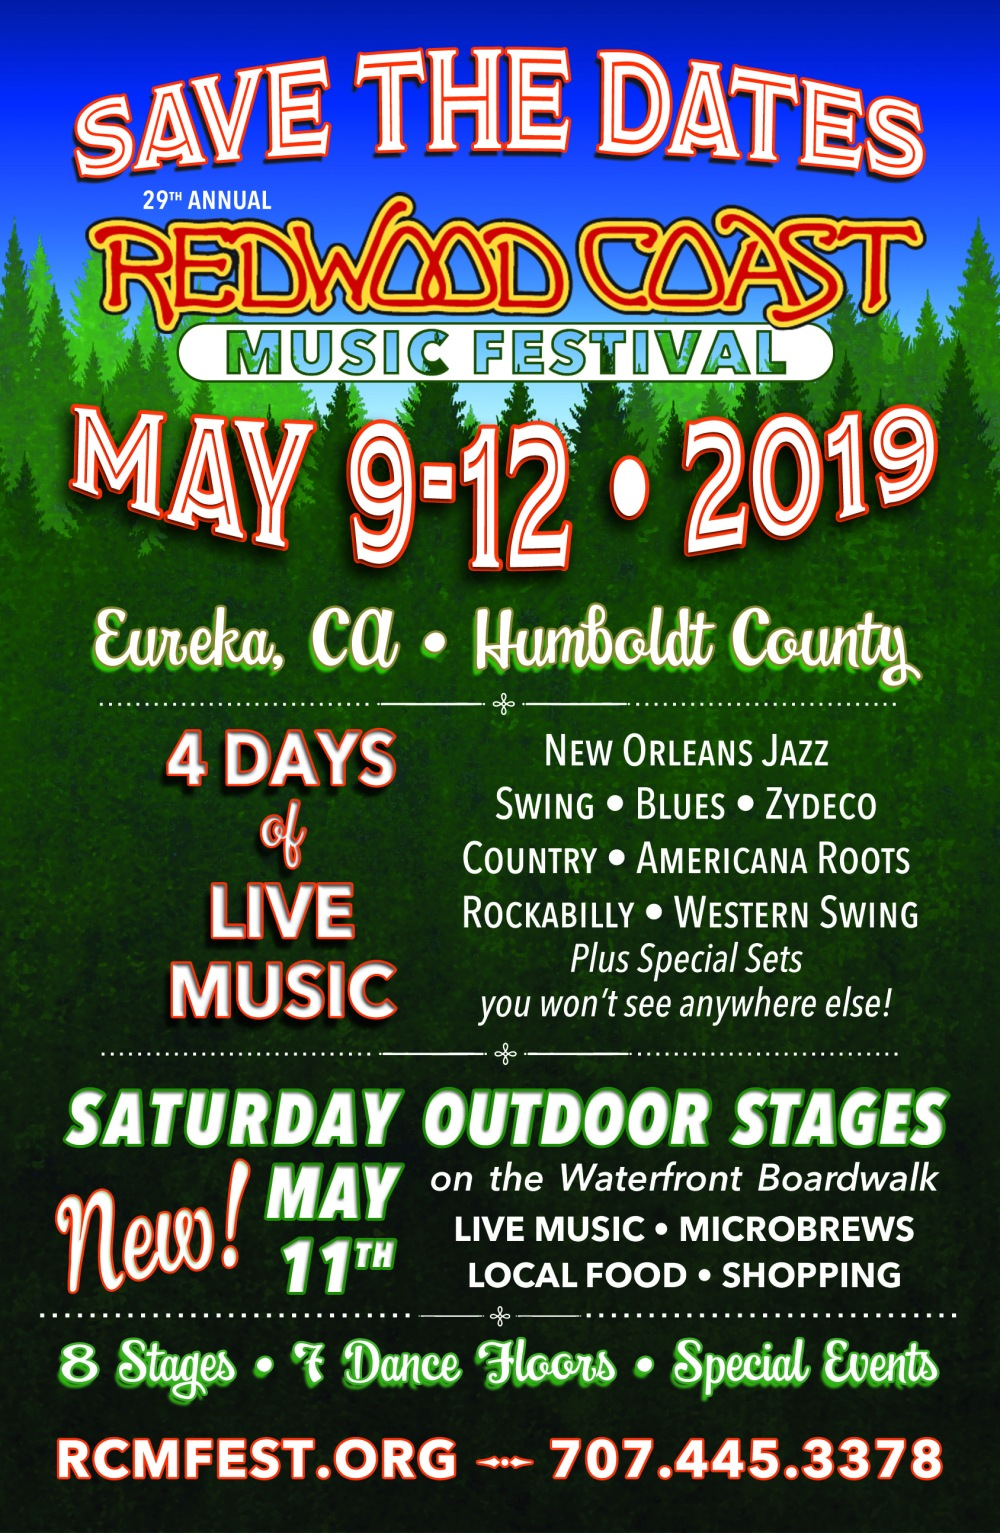 THE DARLING BANDS OF MAY! at the REDWOOD COAST MUSIC FESTIVAL (May 9-12, 2019)